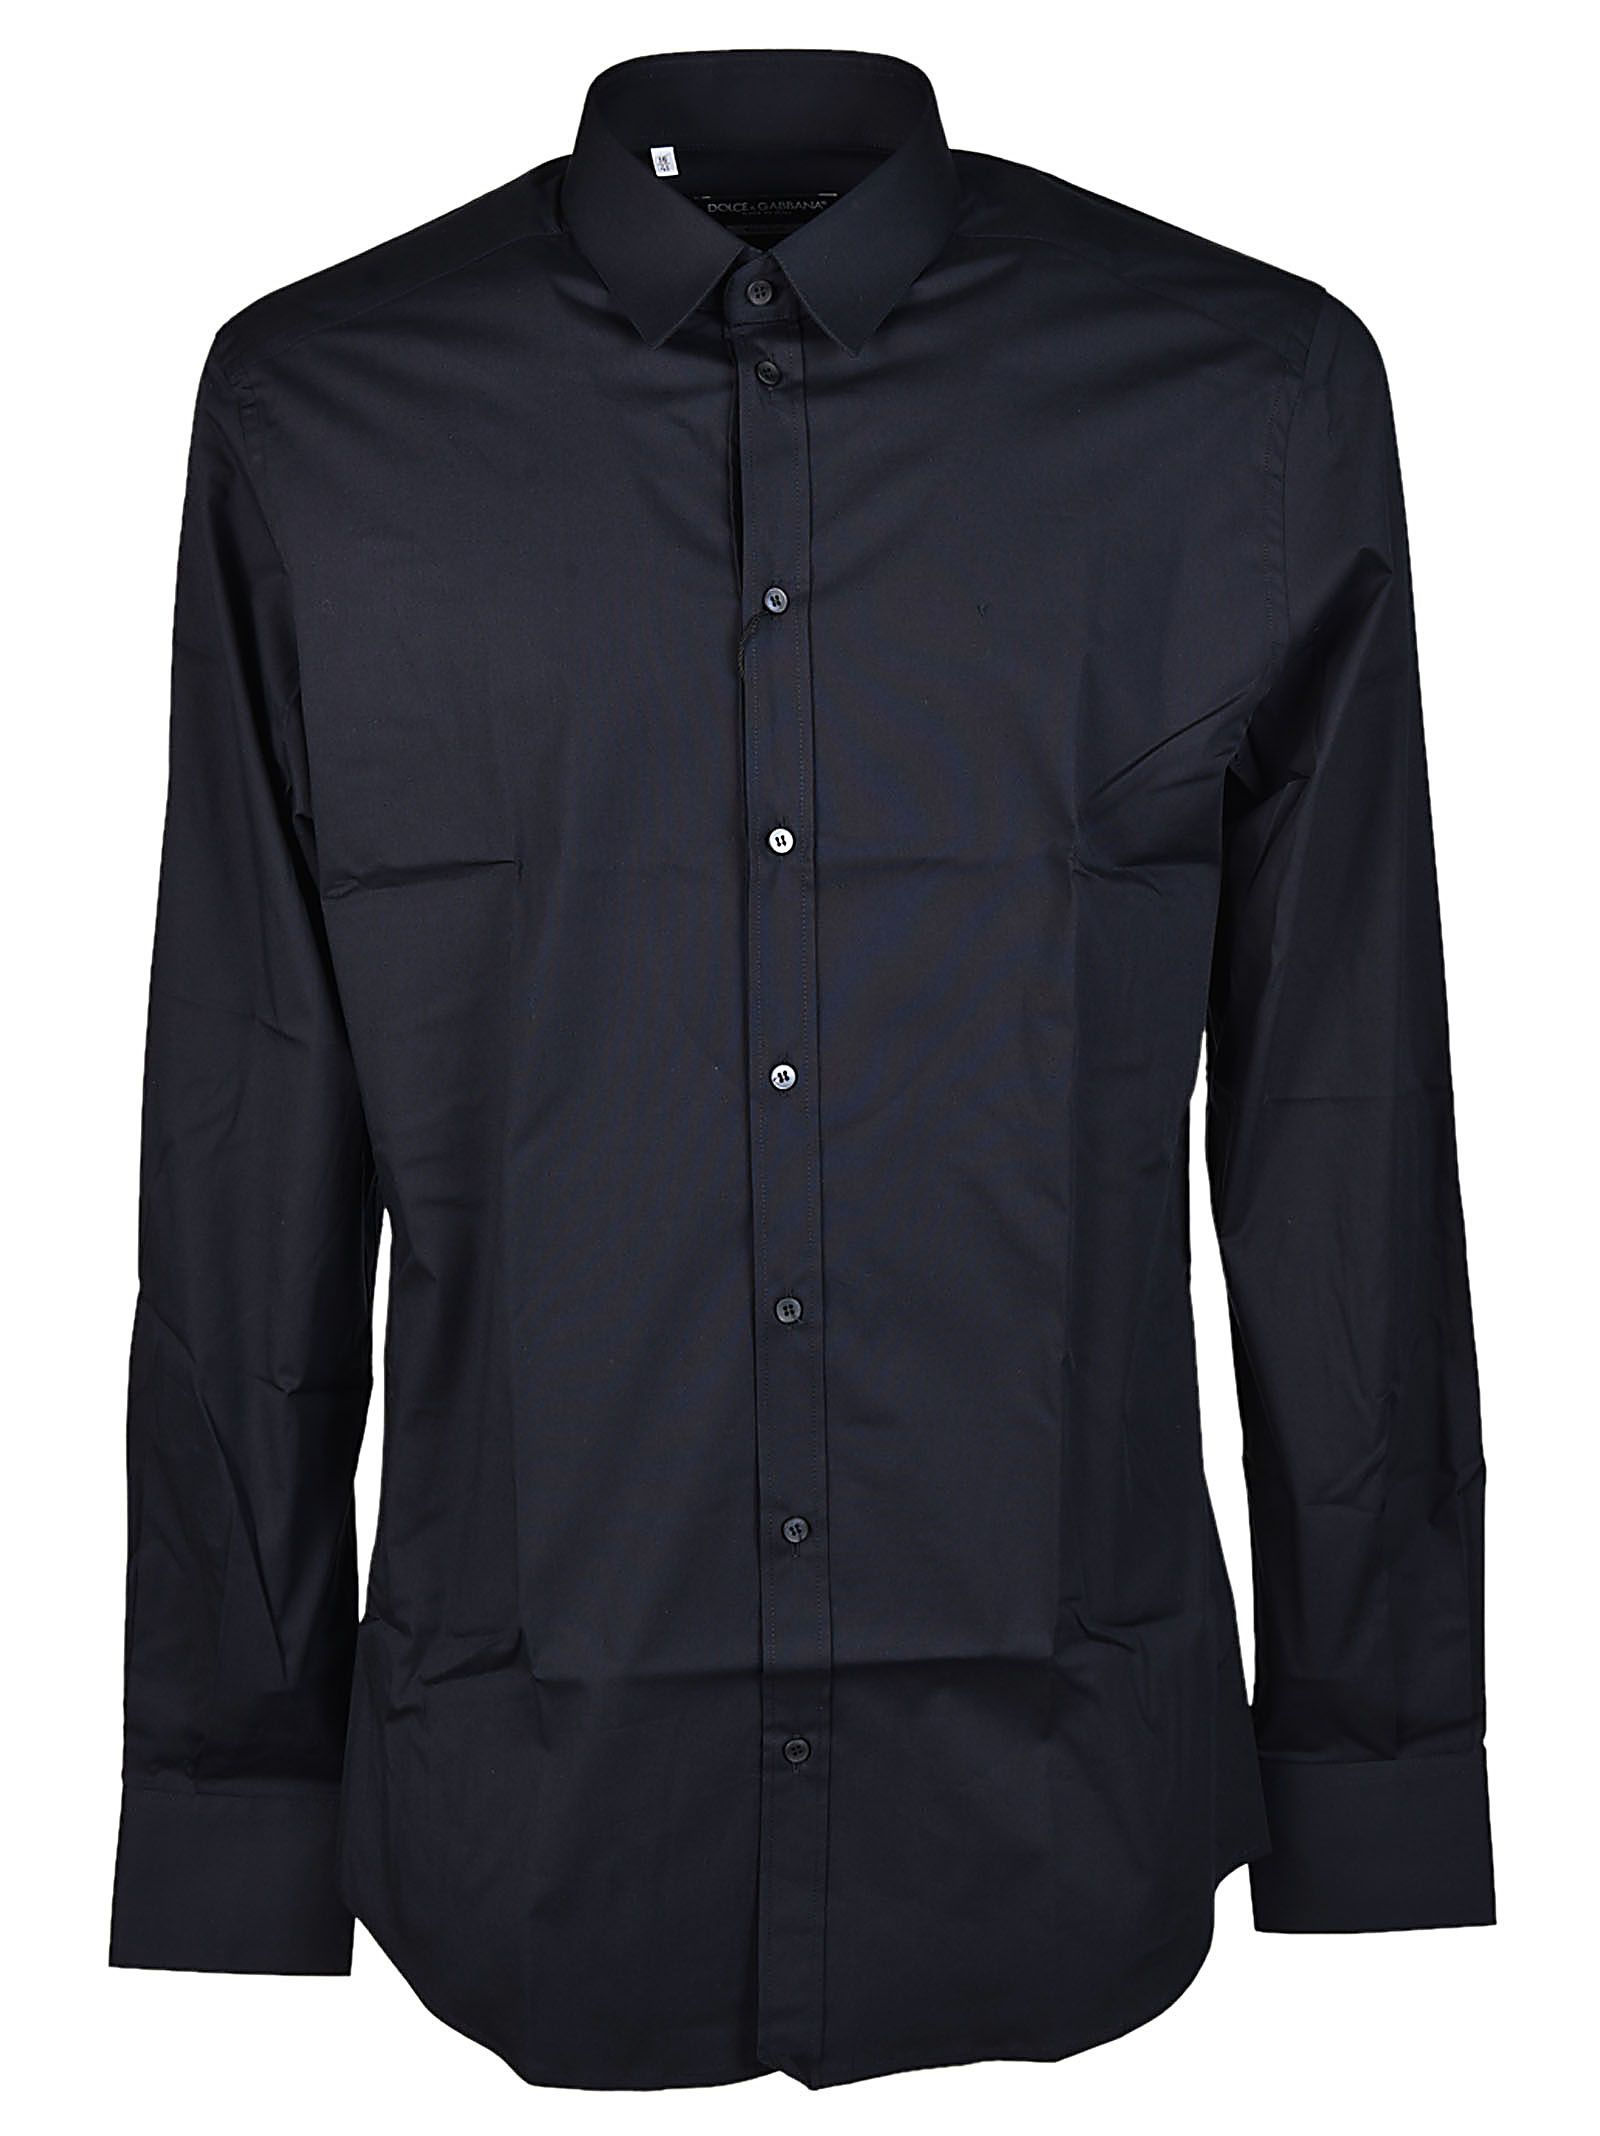 Dolce & Gabbana Classic Fitted Shirt